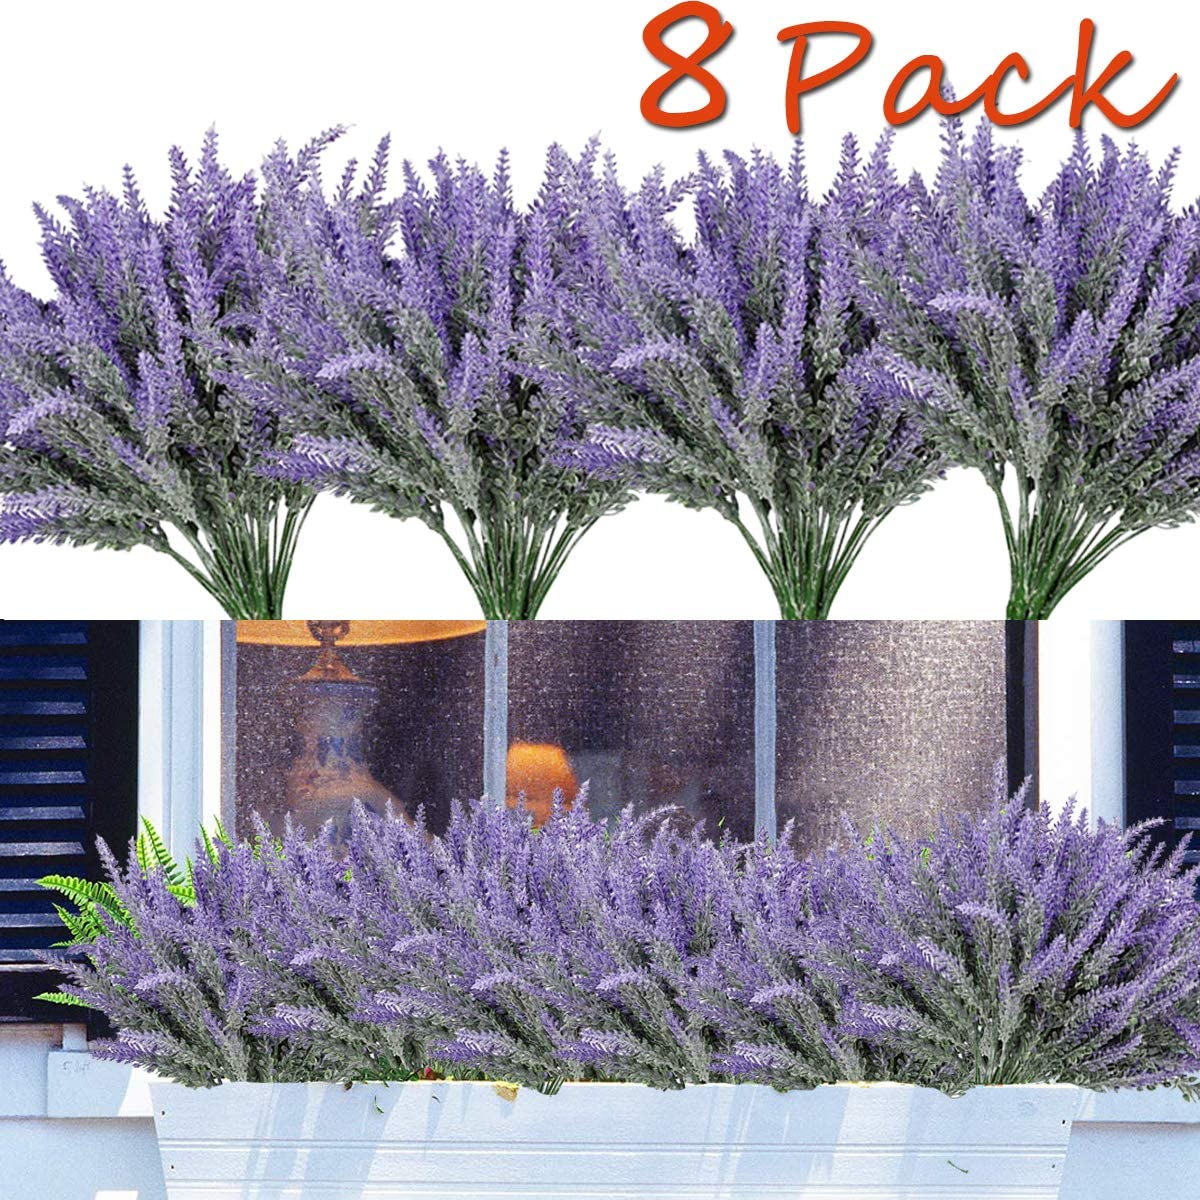 TURNMEON 8PCS Artificial Flowers Outdoor UV Resistant Plants,8 Branches Faux Plastic Lavender Greenery Shrubs Plants Indoor Outside Hanging Planter Kitchen Home Wedding Office Garden Decor (Purple)